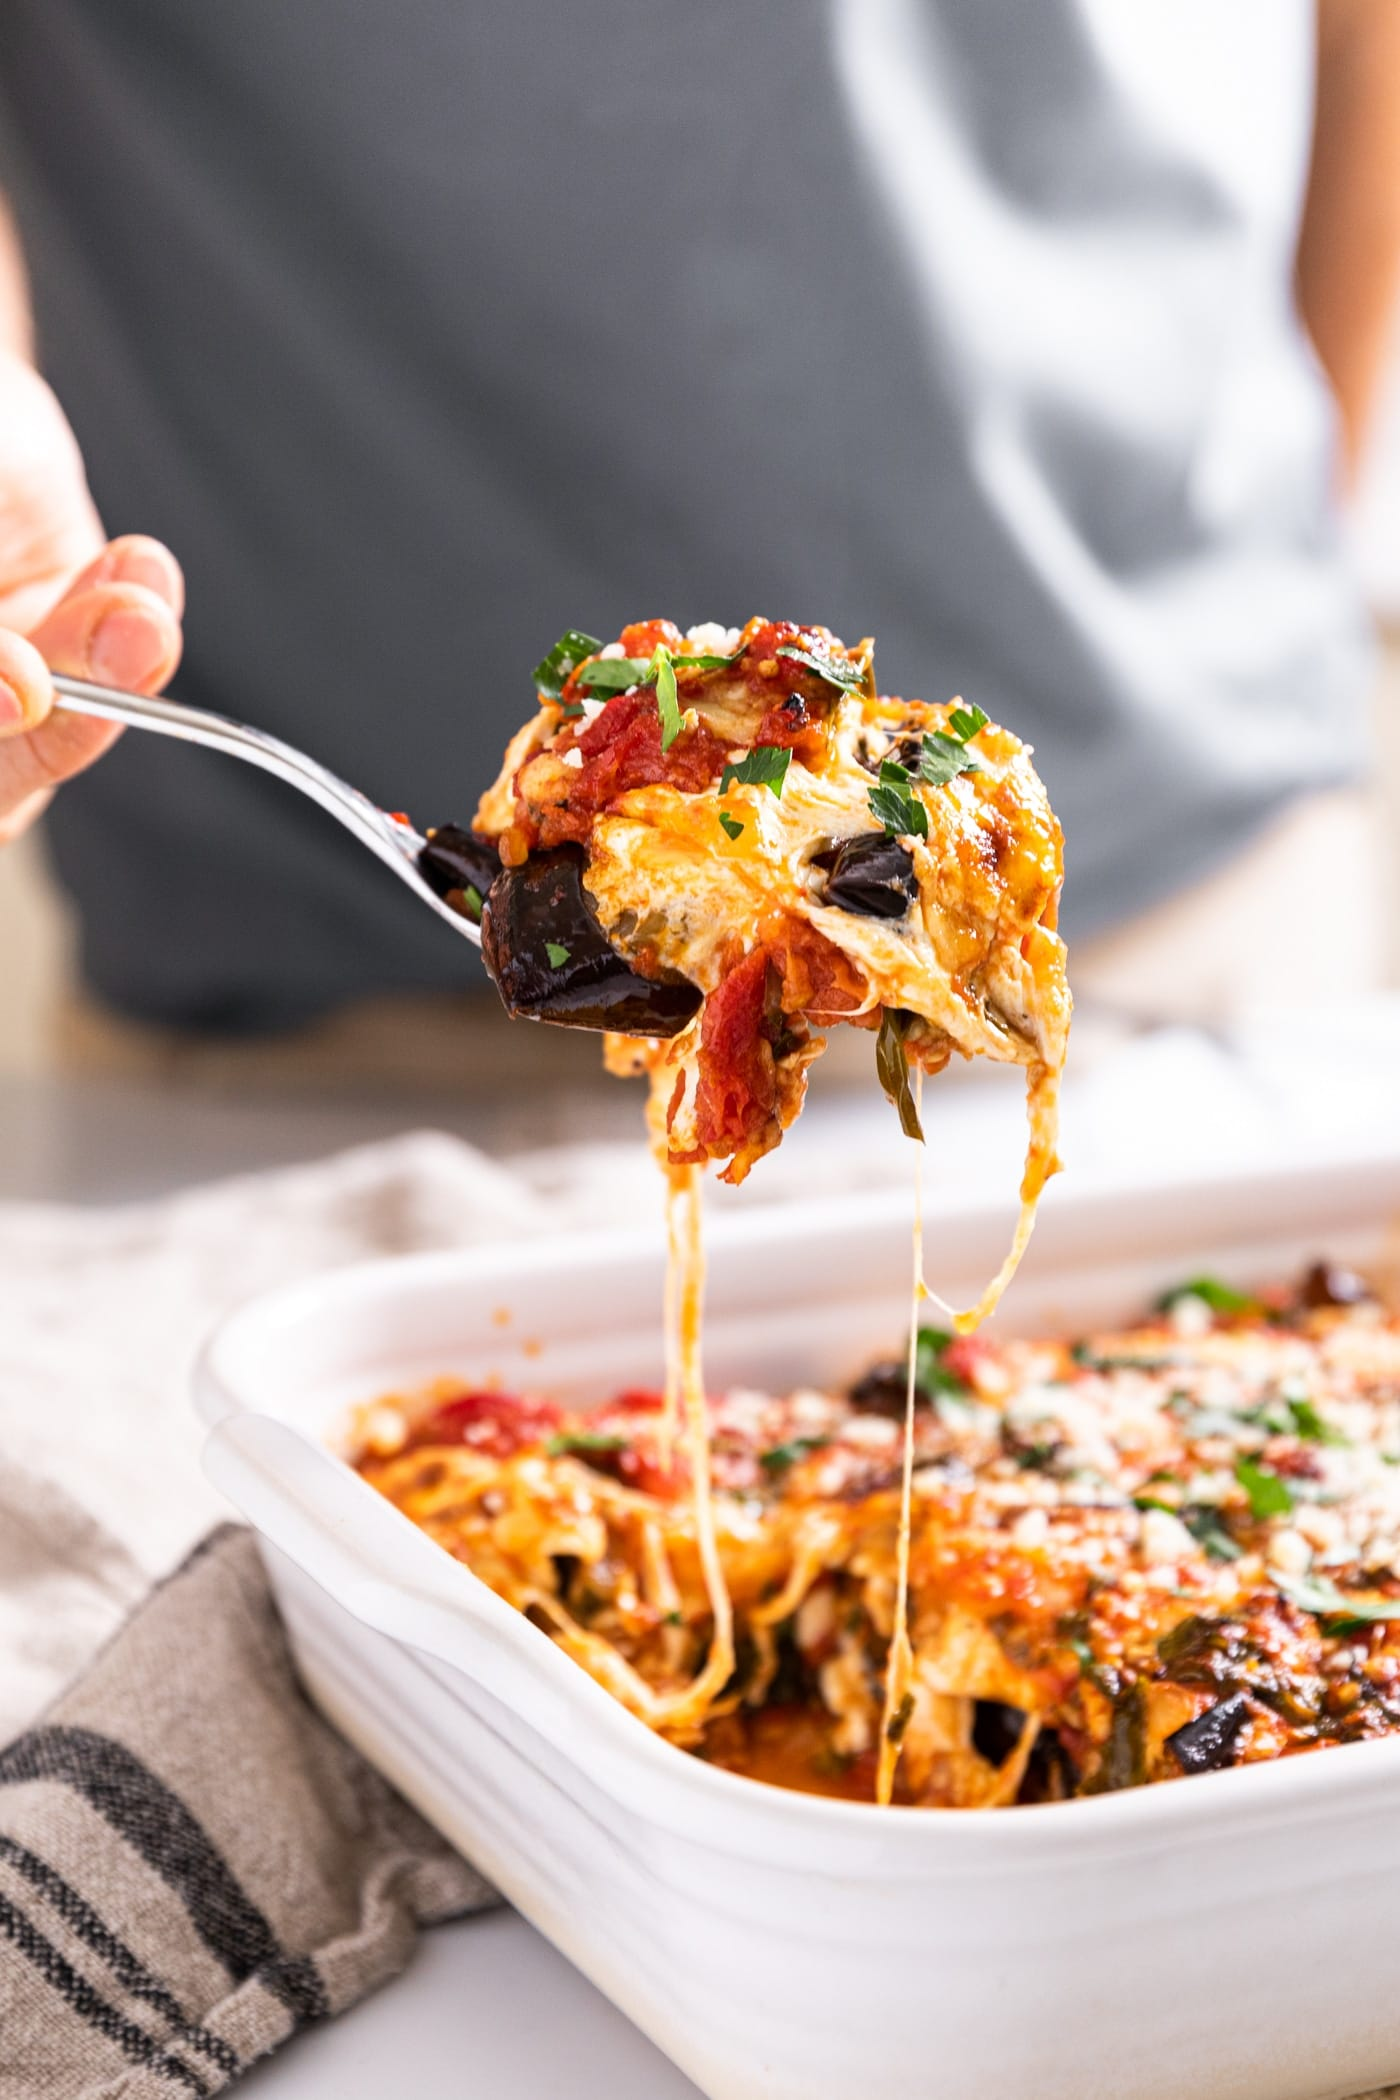 Hand holding scoop of eggplant parmesan from white baking dish after freshly being taken from the oven with strings of cheese still attached to rest of dish below